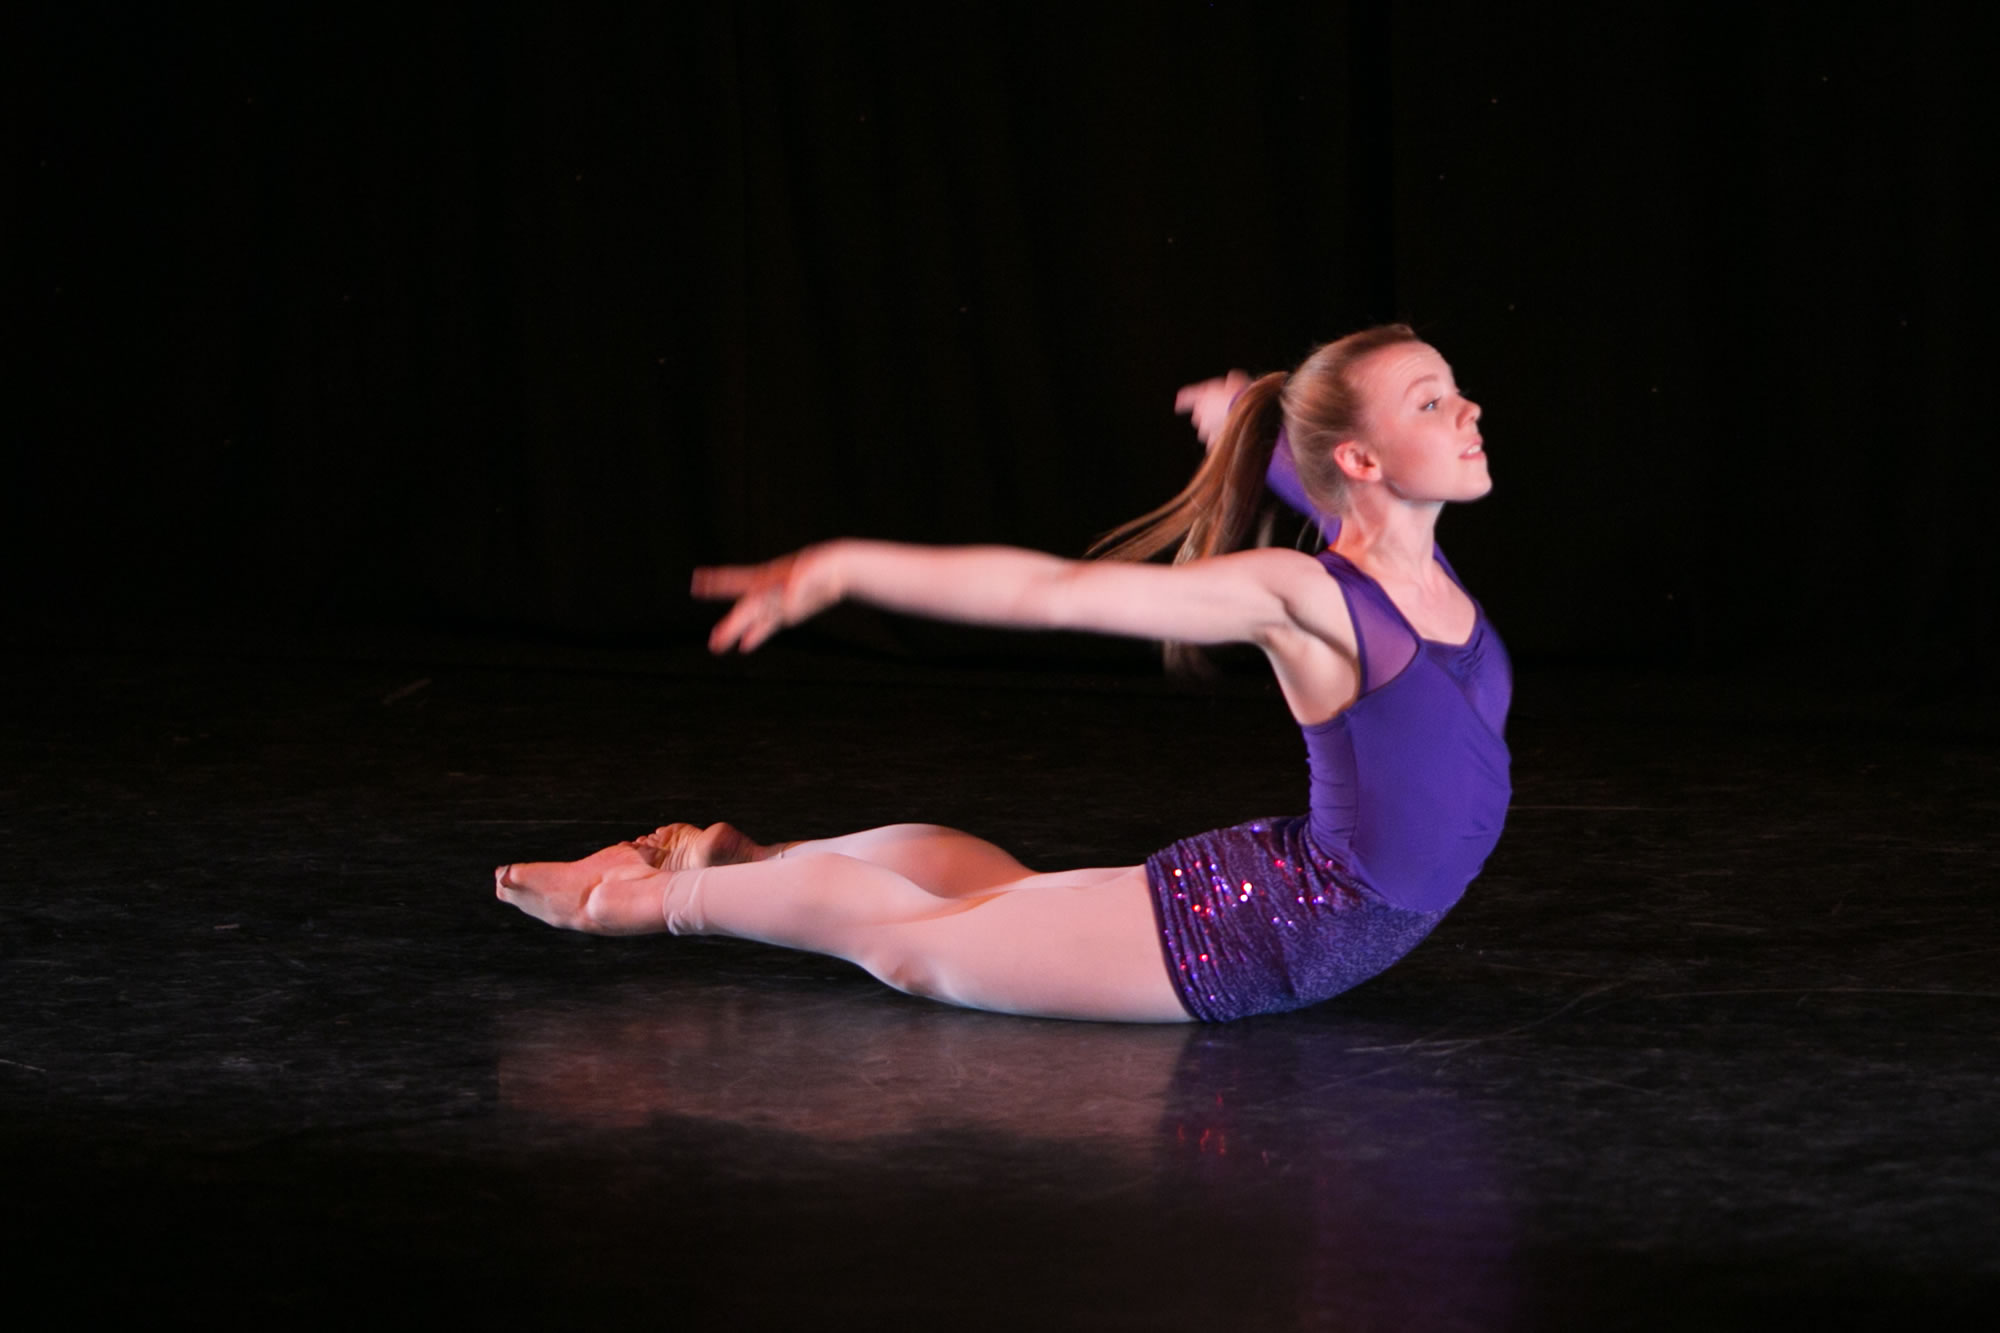 Hitchin_School_of_Dance_Show_2019-SM1_1856.jpg